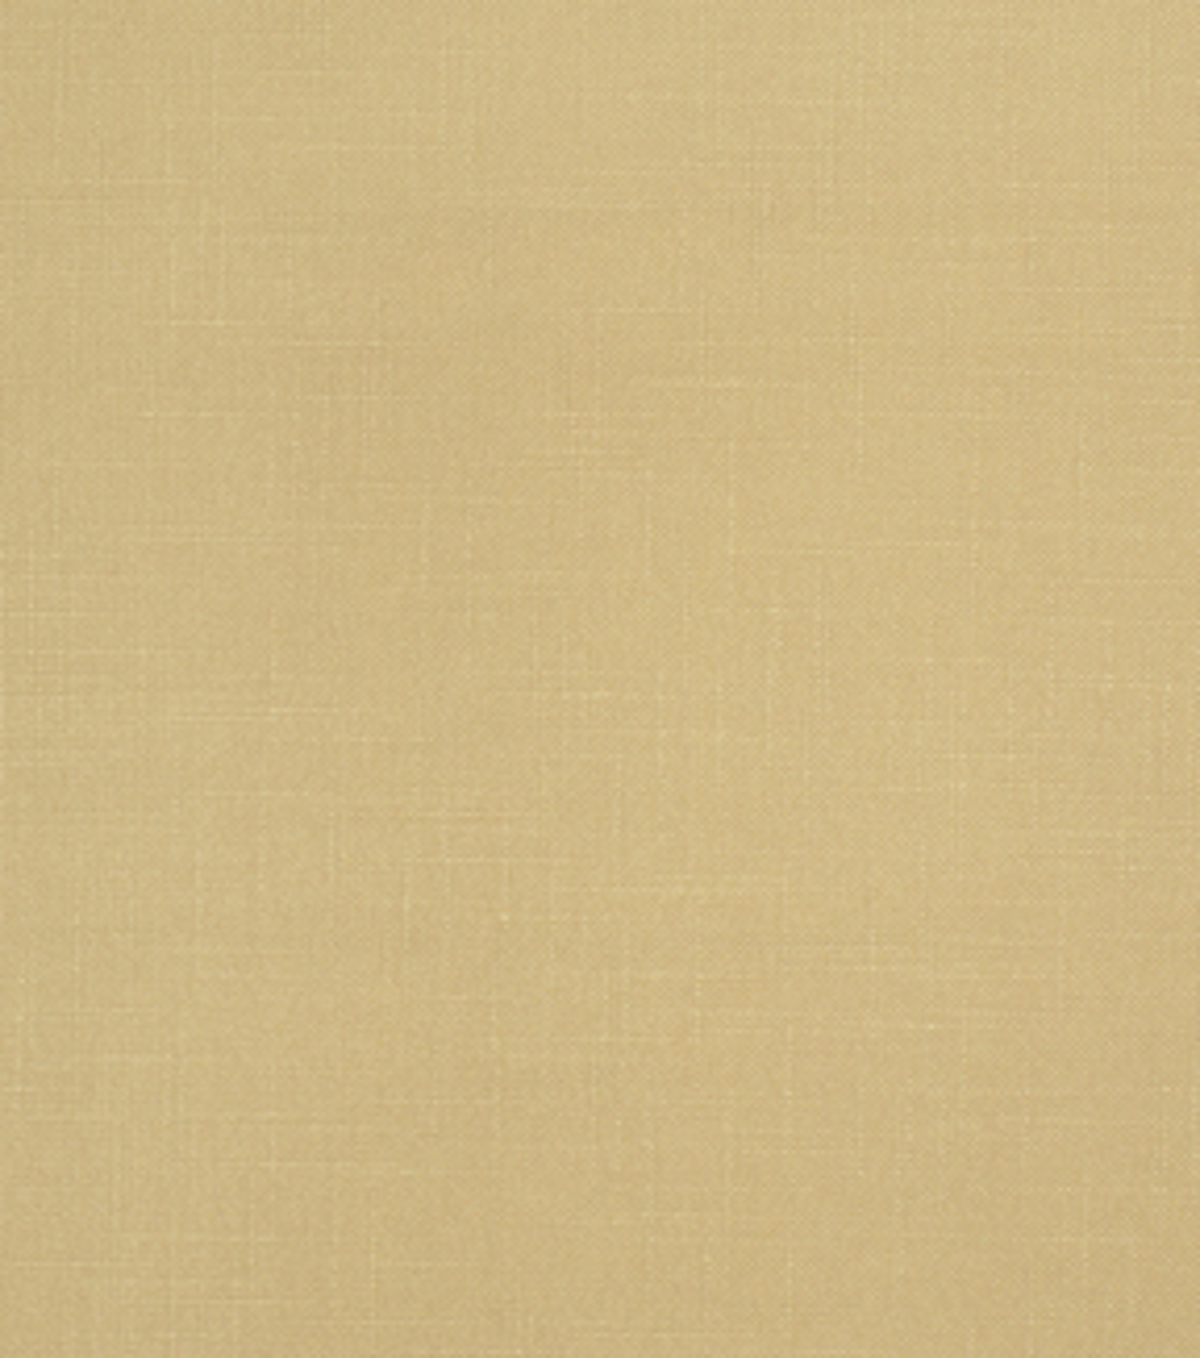 Home Decor 8\u0022x8\u0022 Fabric Swatch-Signature Series Gallantry Amberglow